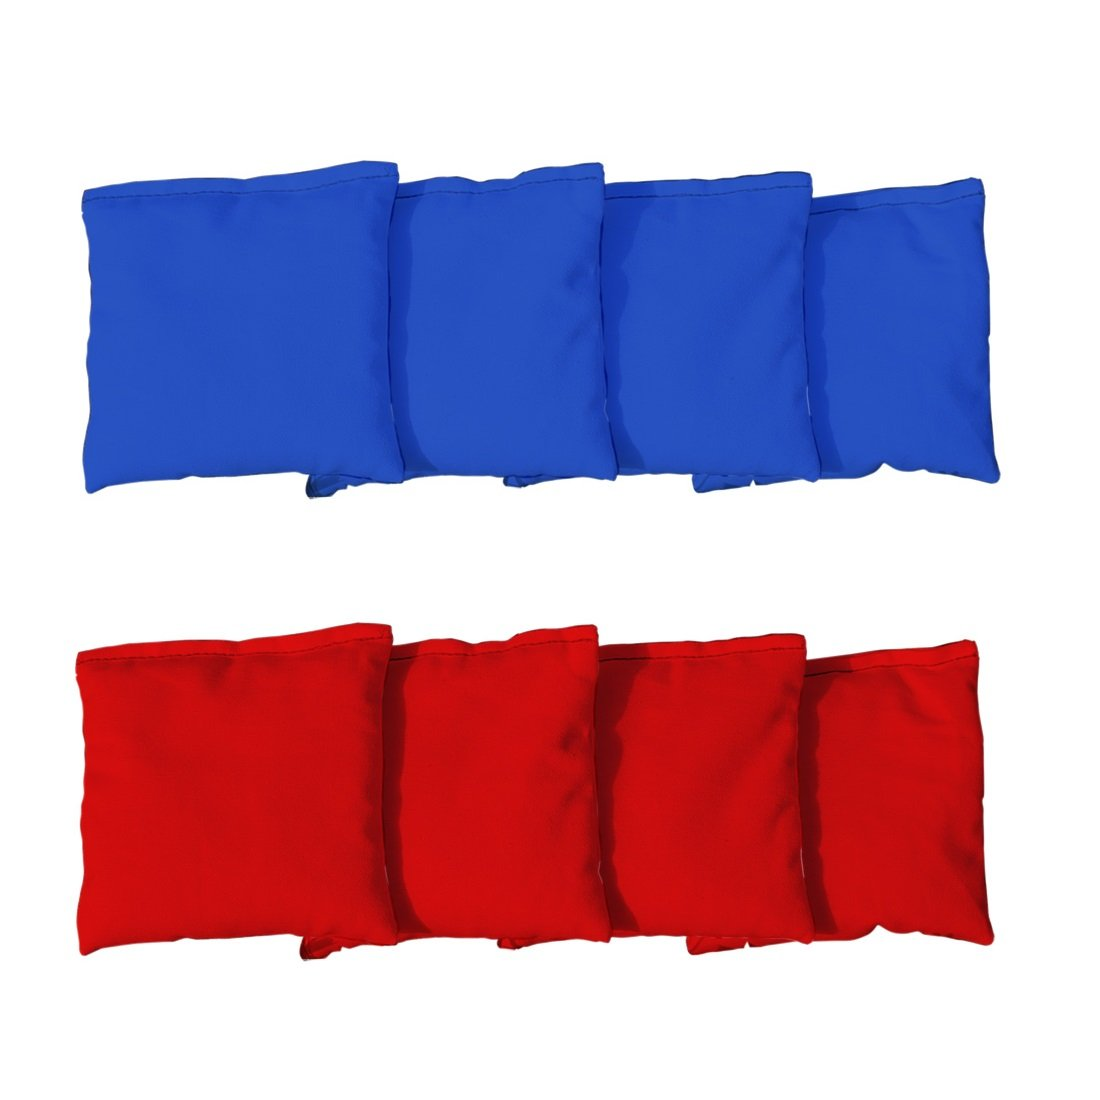 Victory Tailgate (8 Regulation Duck Cloth Cornhole Bags - Whole Kernel Corn Fill Tote Bag (4 Red & 4 Royal Blue)